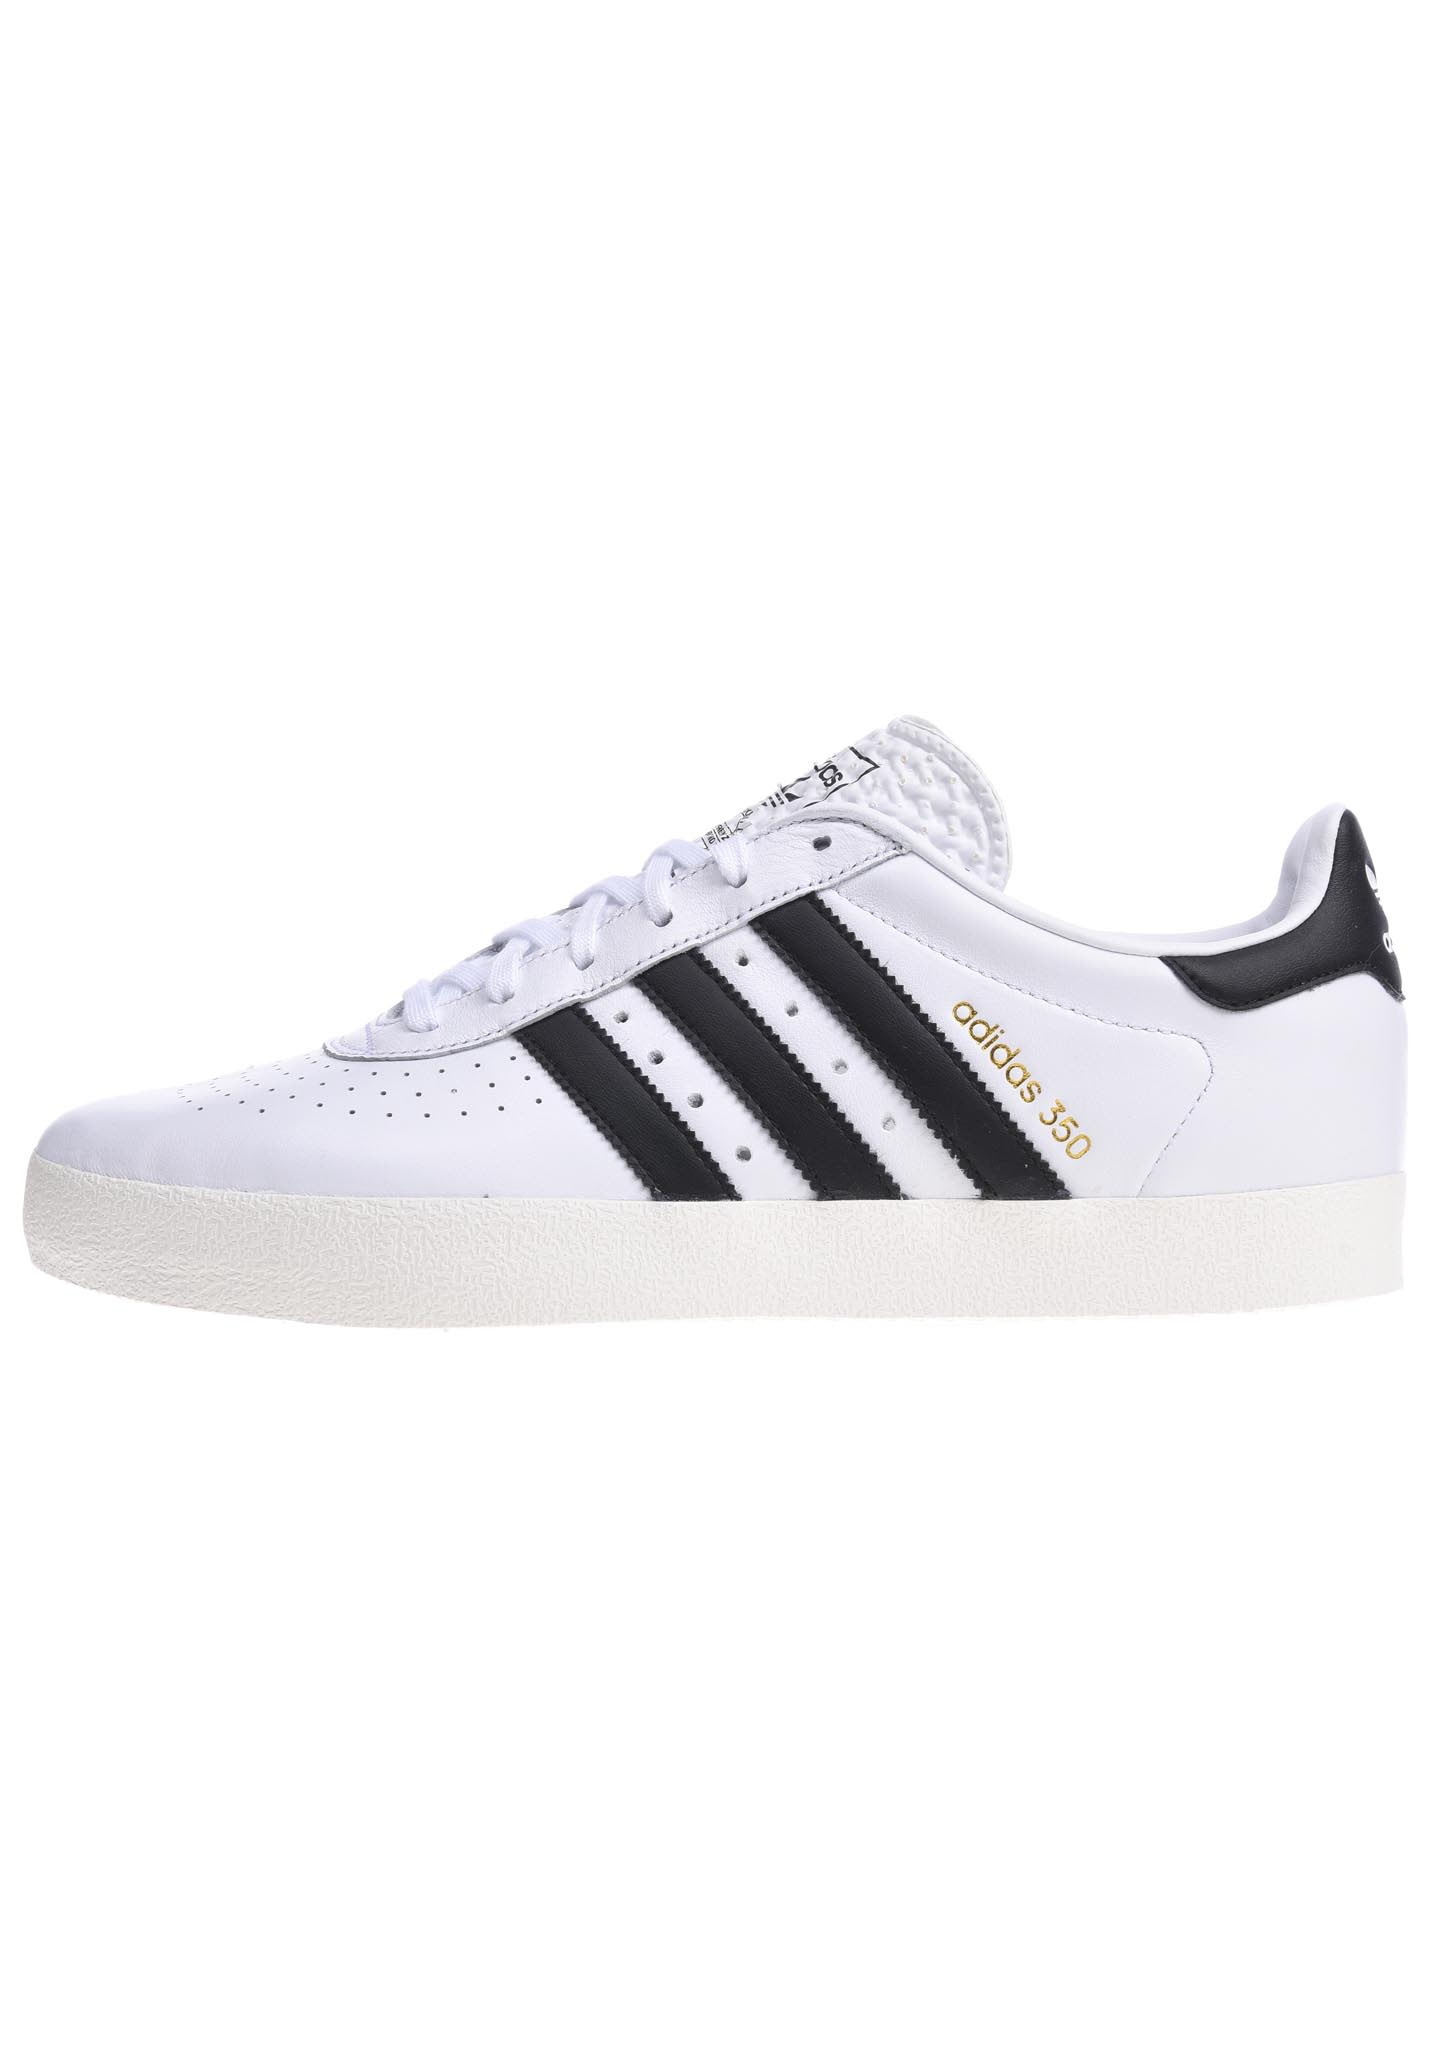 247dbbd95ab ADIDAS ORIGINALS Adidas 350 - Baskets pour Homme - Blanc - Planet Sports